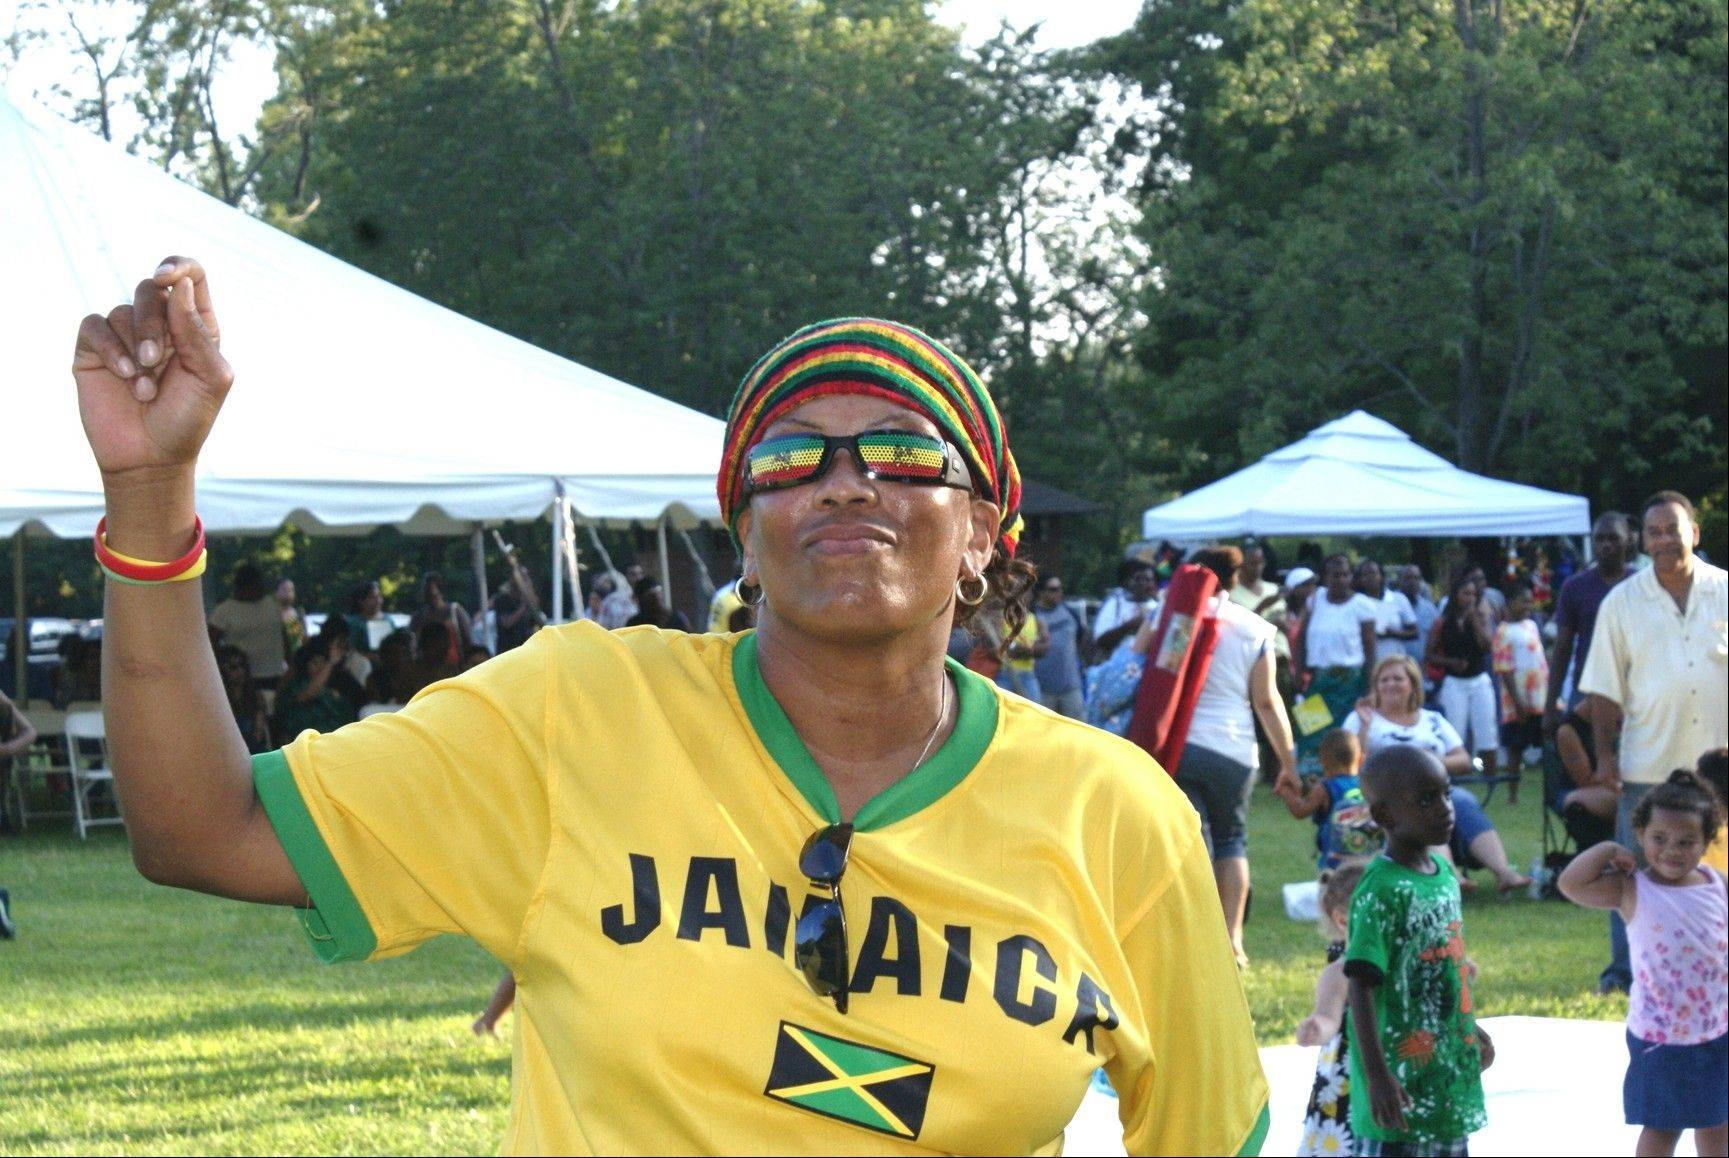 Jamaican culture is big part of the Afrofest and Jamaicafest event to be held from 2-7 p.m. Saturday, Aug. 17, at the Greenbelt Cultural Center, 1215 Green Bay Road, North Chicago.